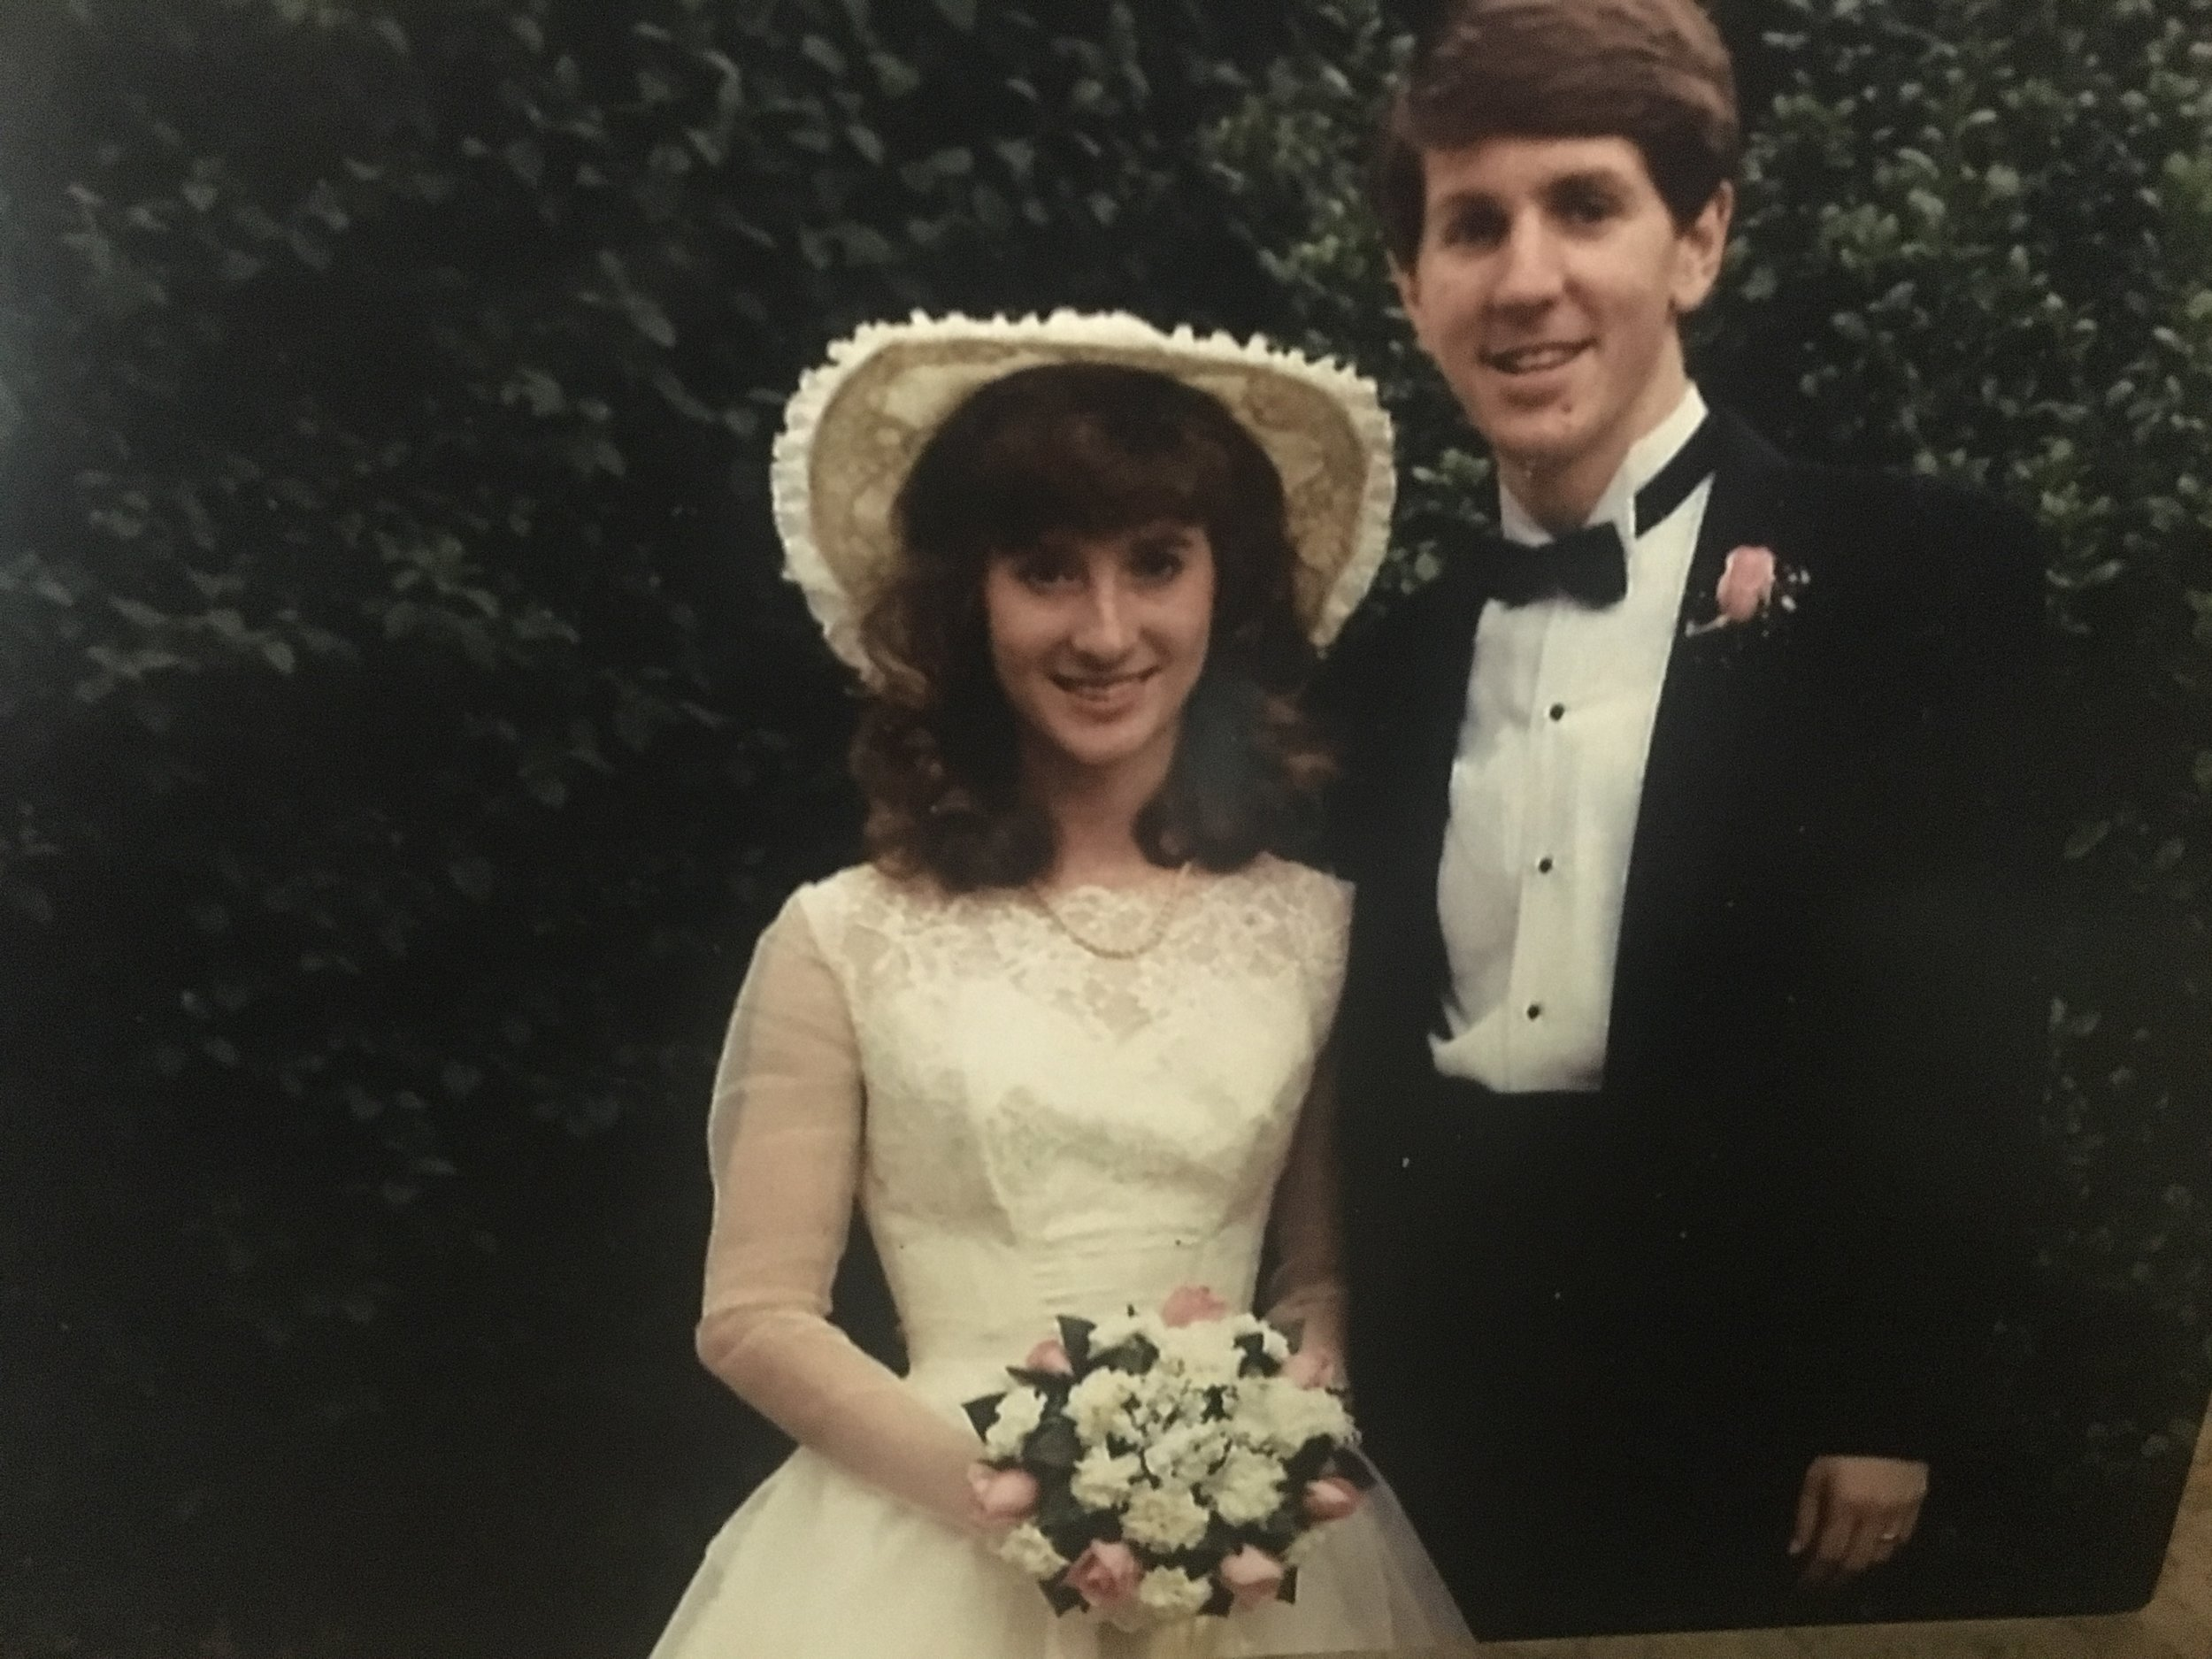 [ PHOTO ] Leslie and Mark's wedding (May 24, 1986)